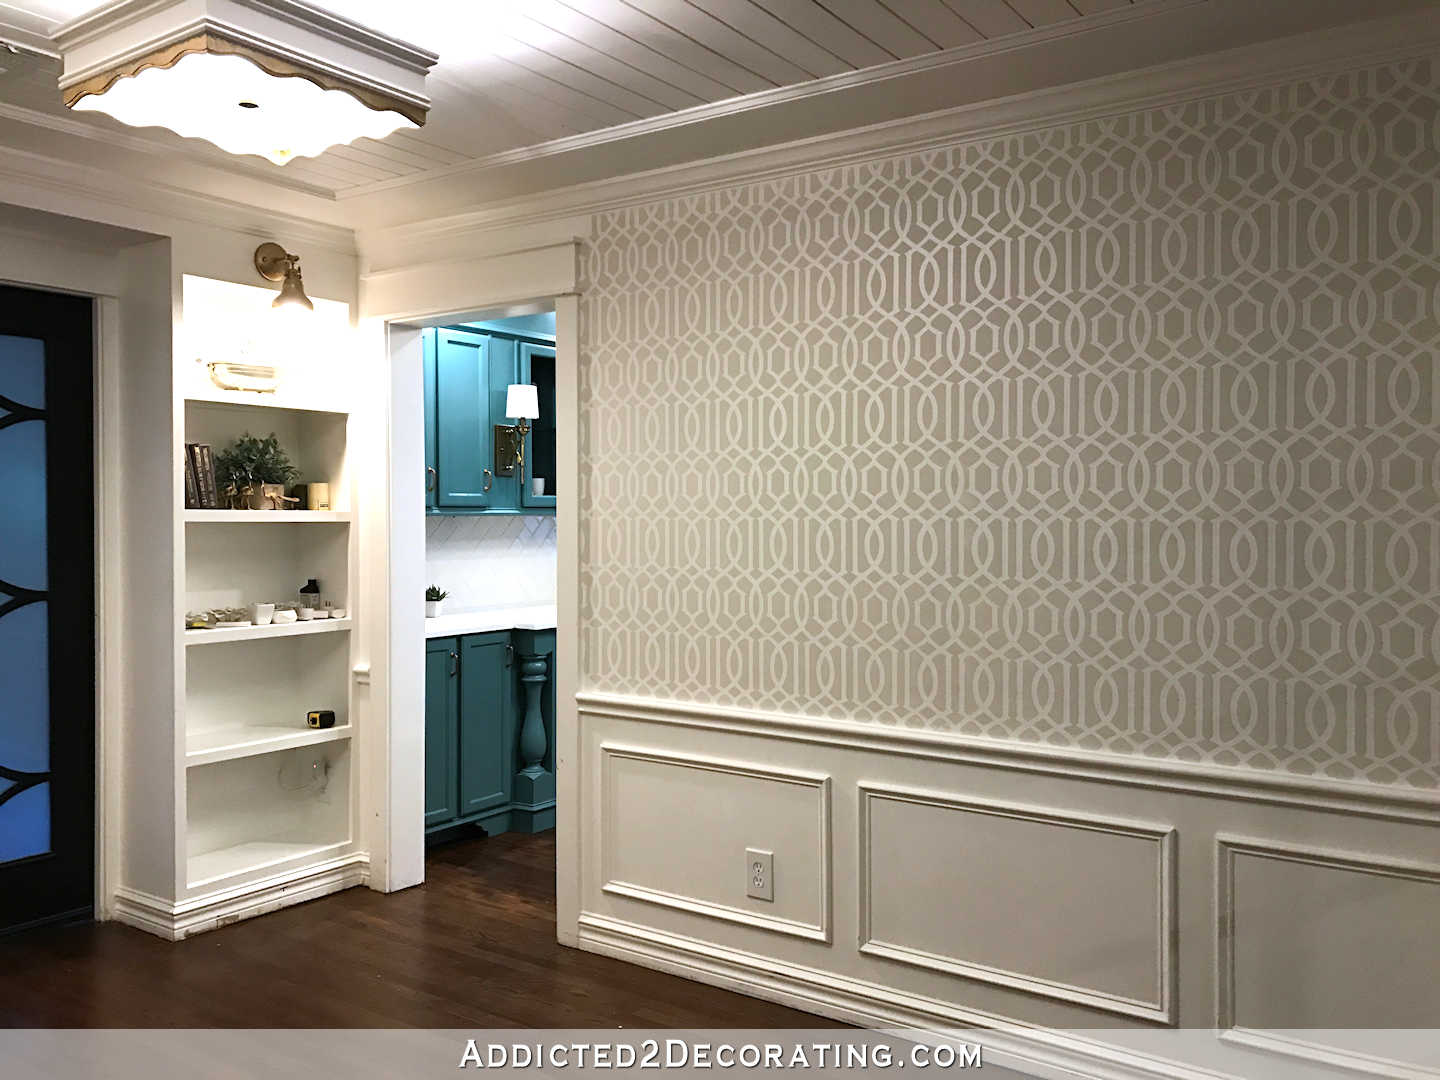 stenciled trellis design on walls in music room - 4